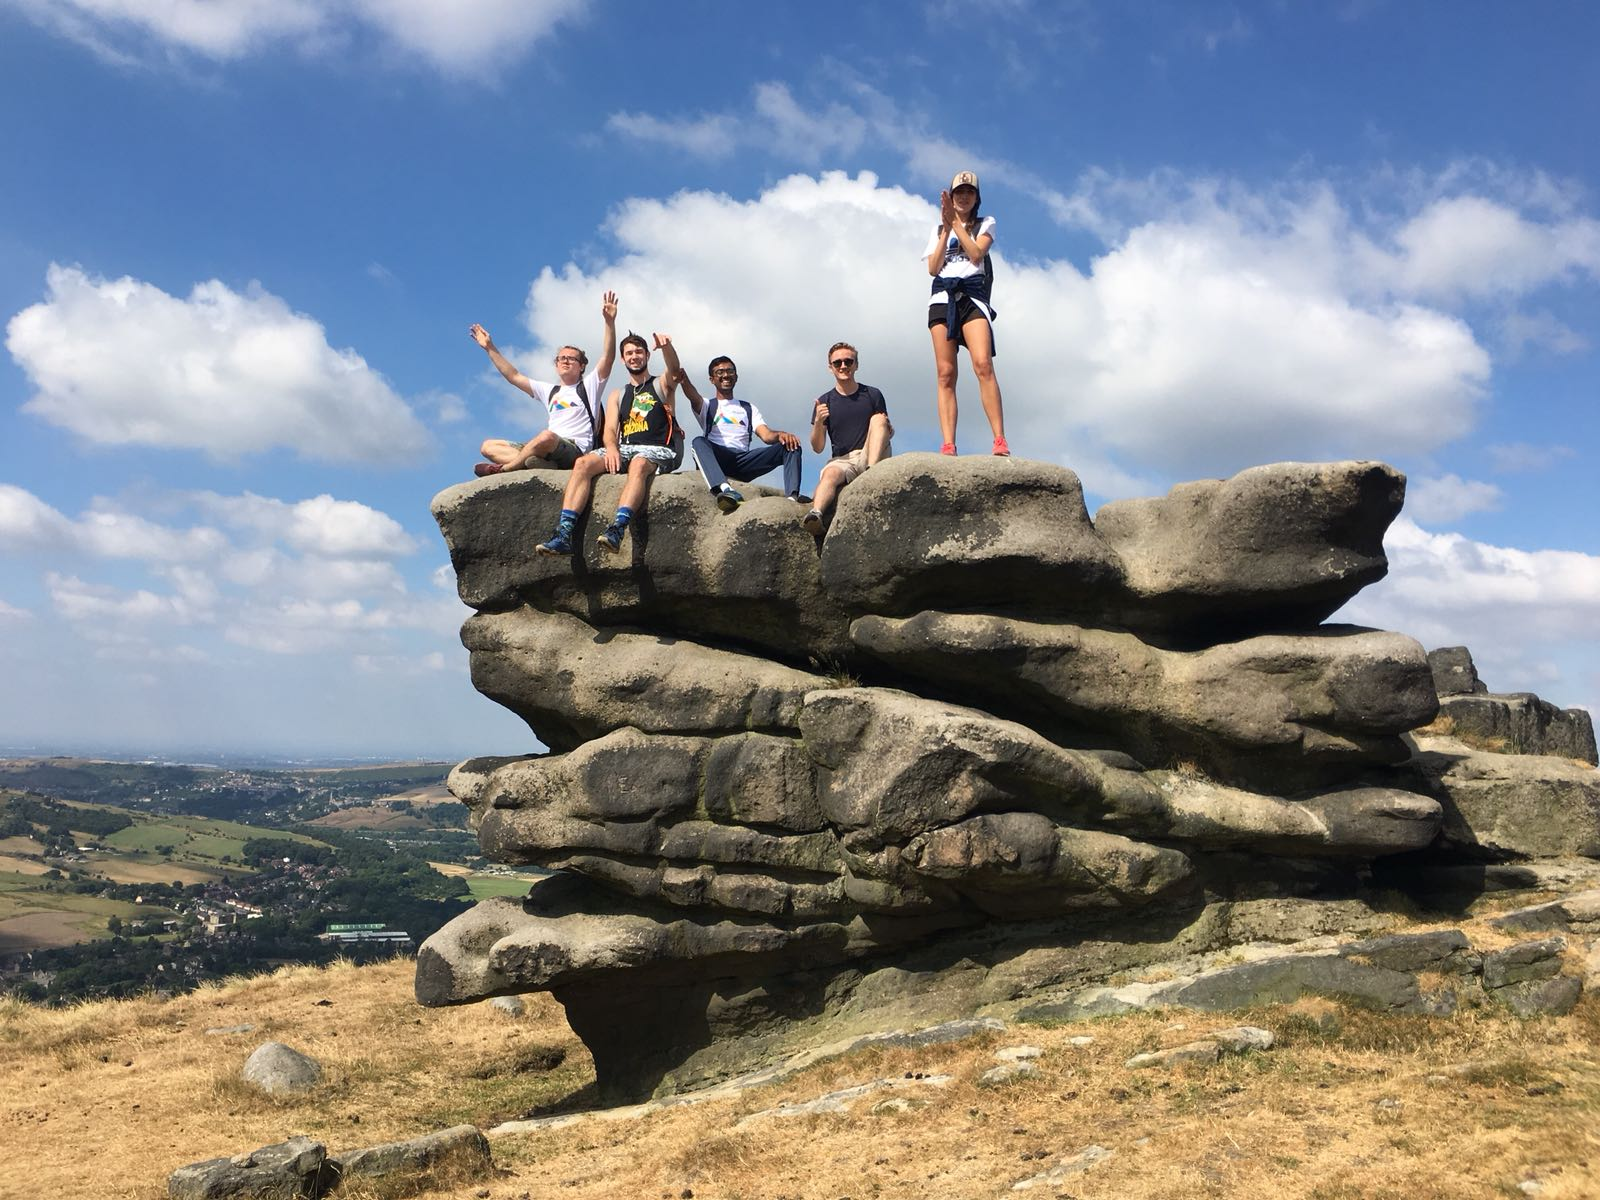 CRCC Asia interns stand atop a rock in the hills of the Peak District near Manchester